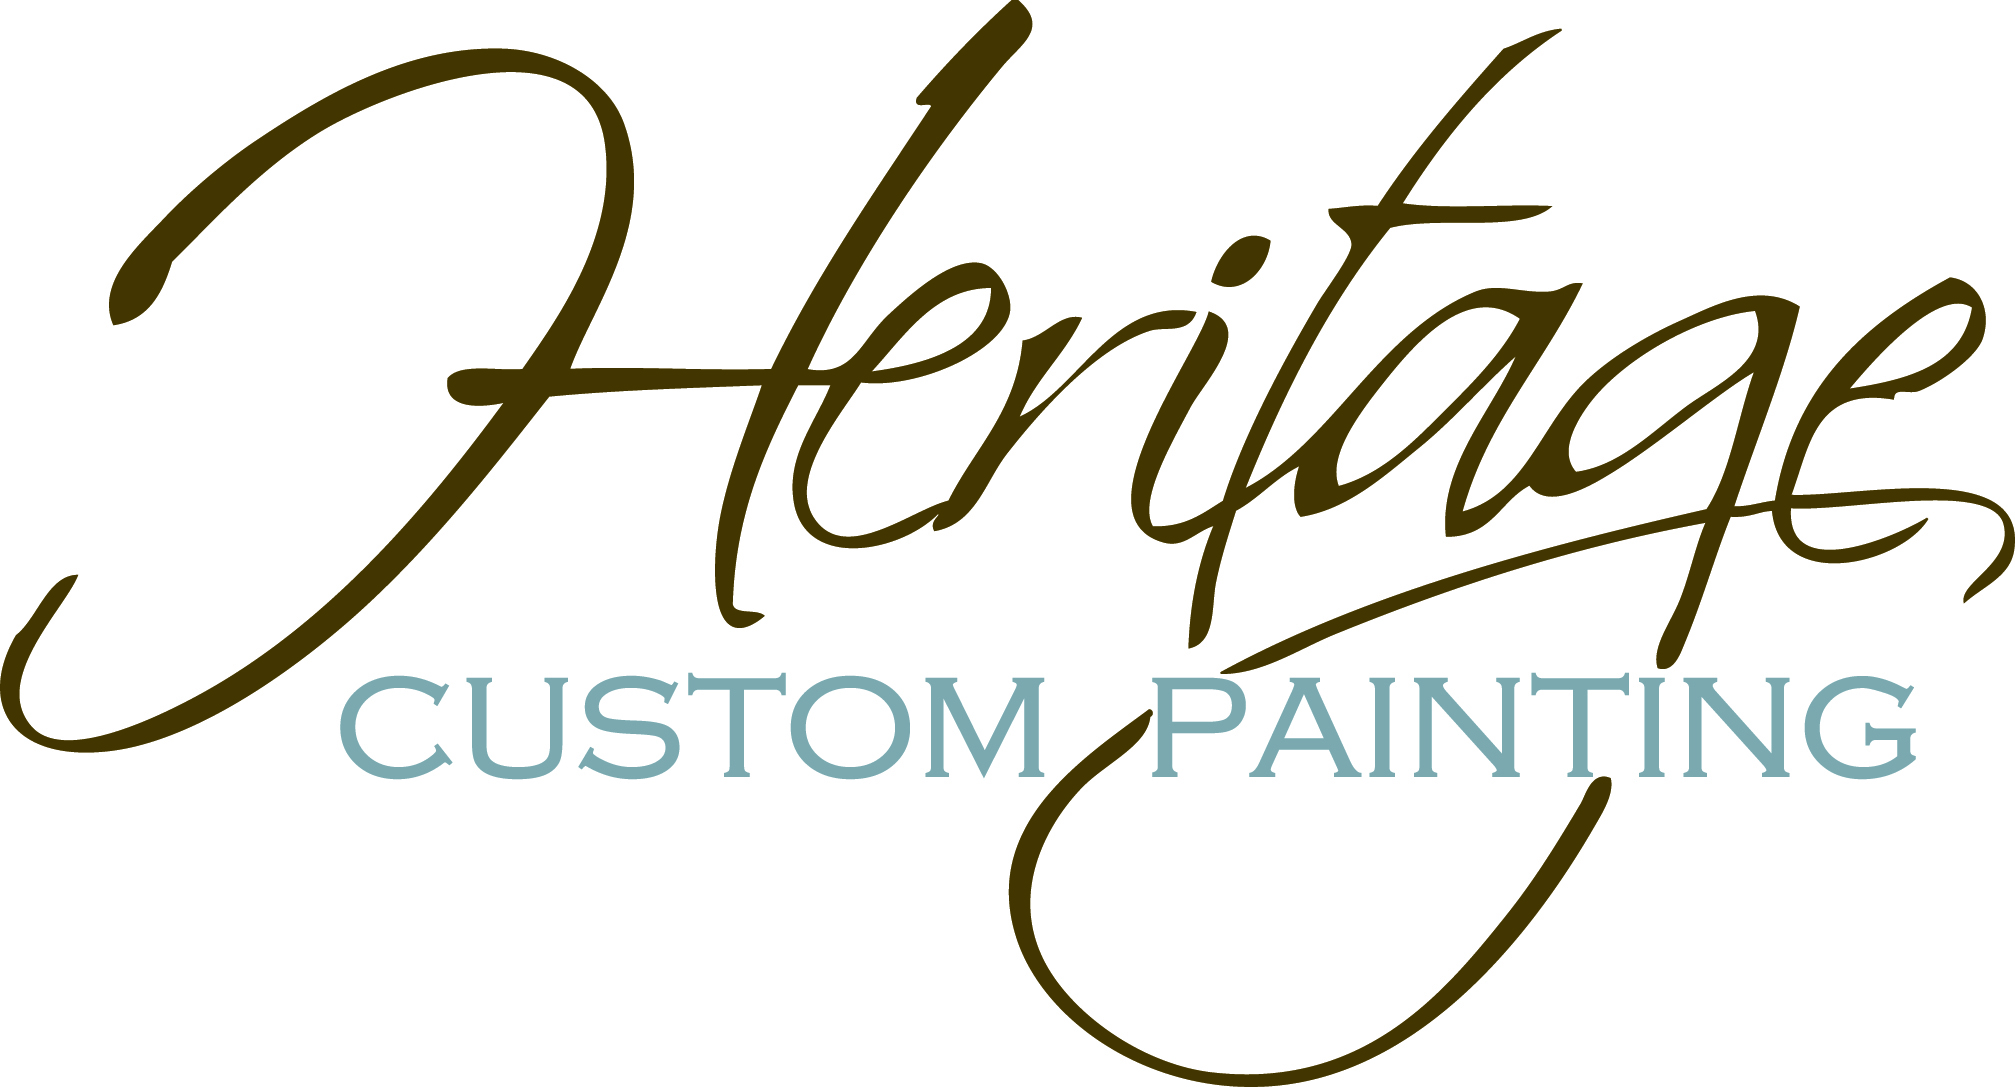 *Indiana Only* Giveaway: Heritage Custom Painting (Tipton, IN)